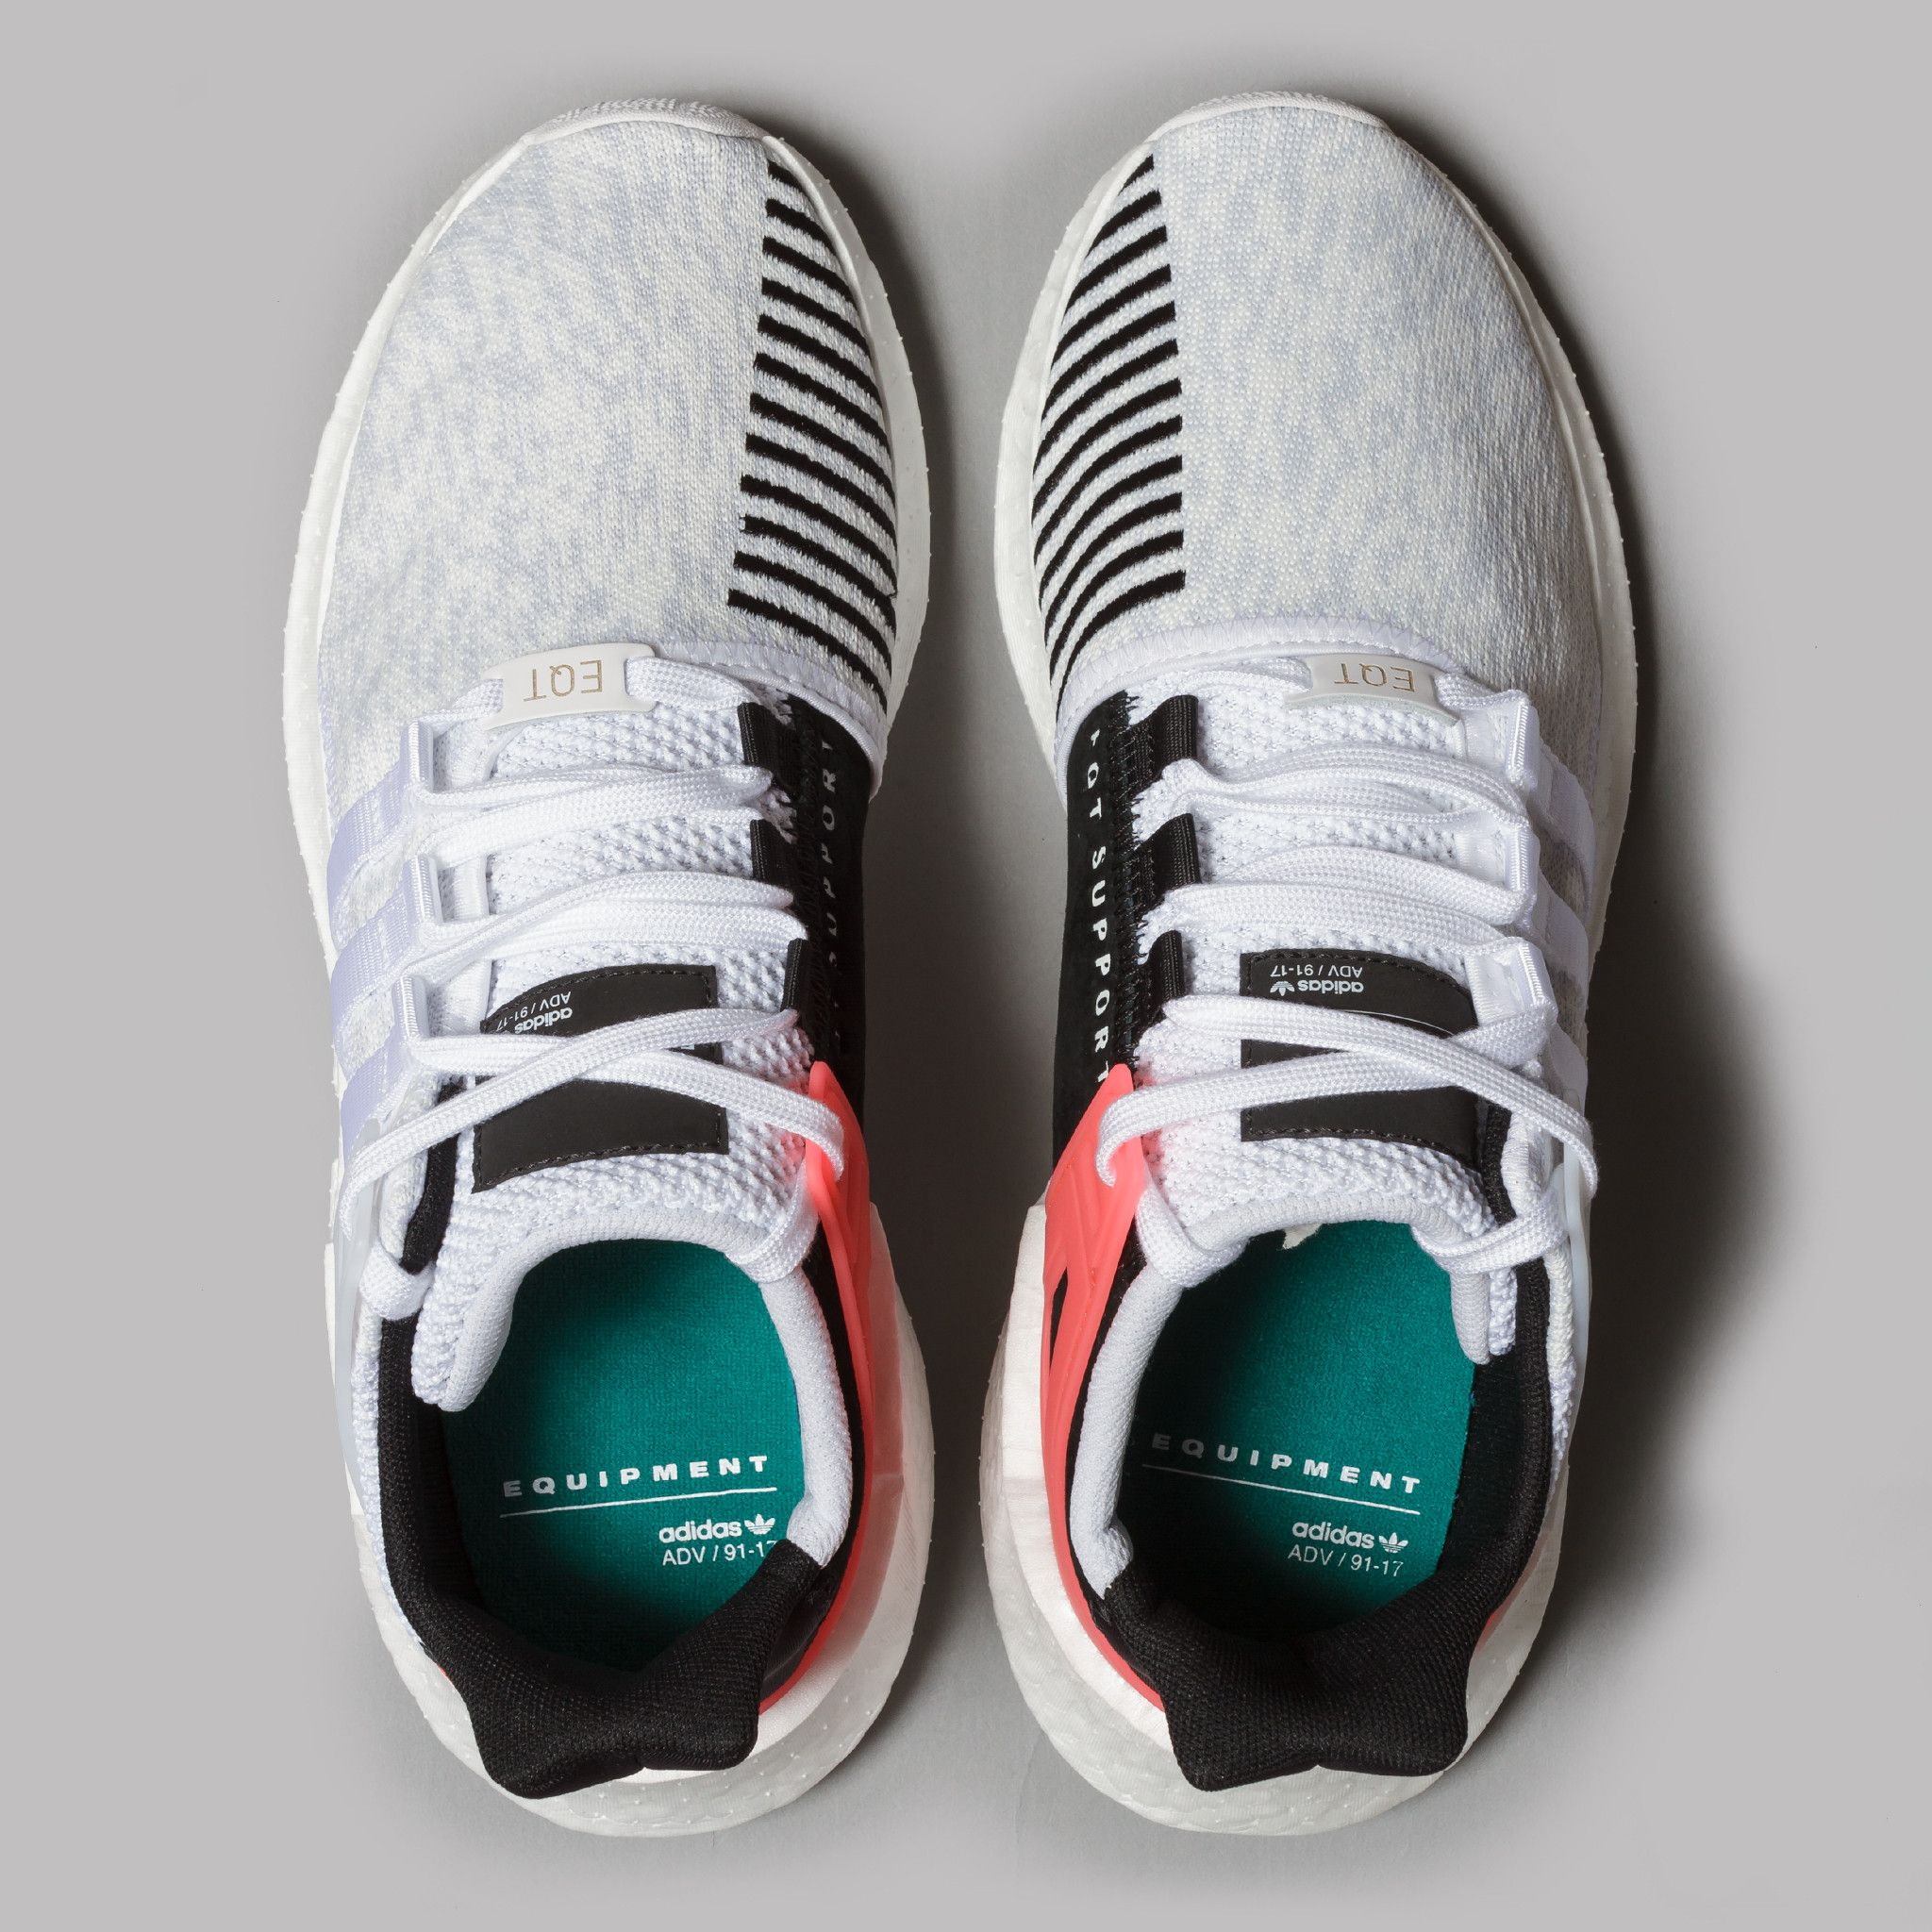 online retailer 114eb 99f7e The adidas EQT Support 9317 Is Unveiled In White And Turbo R